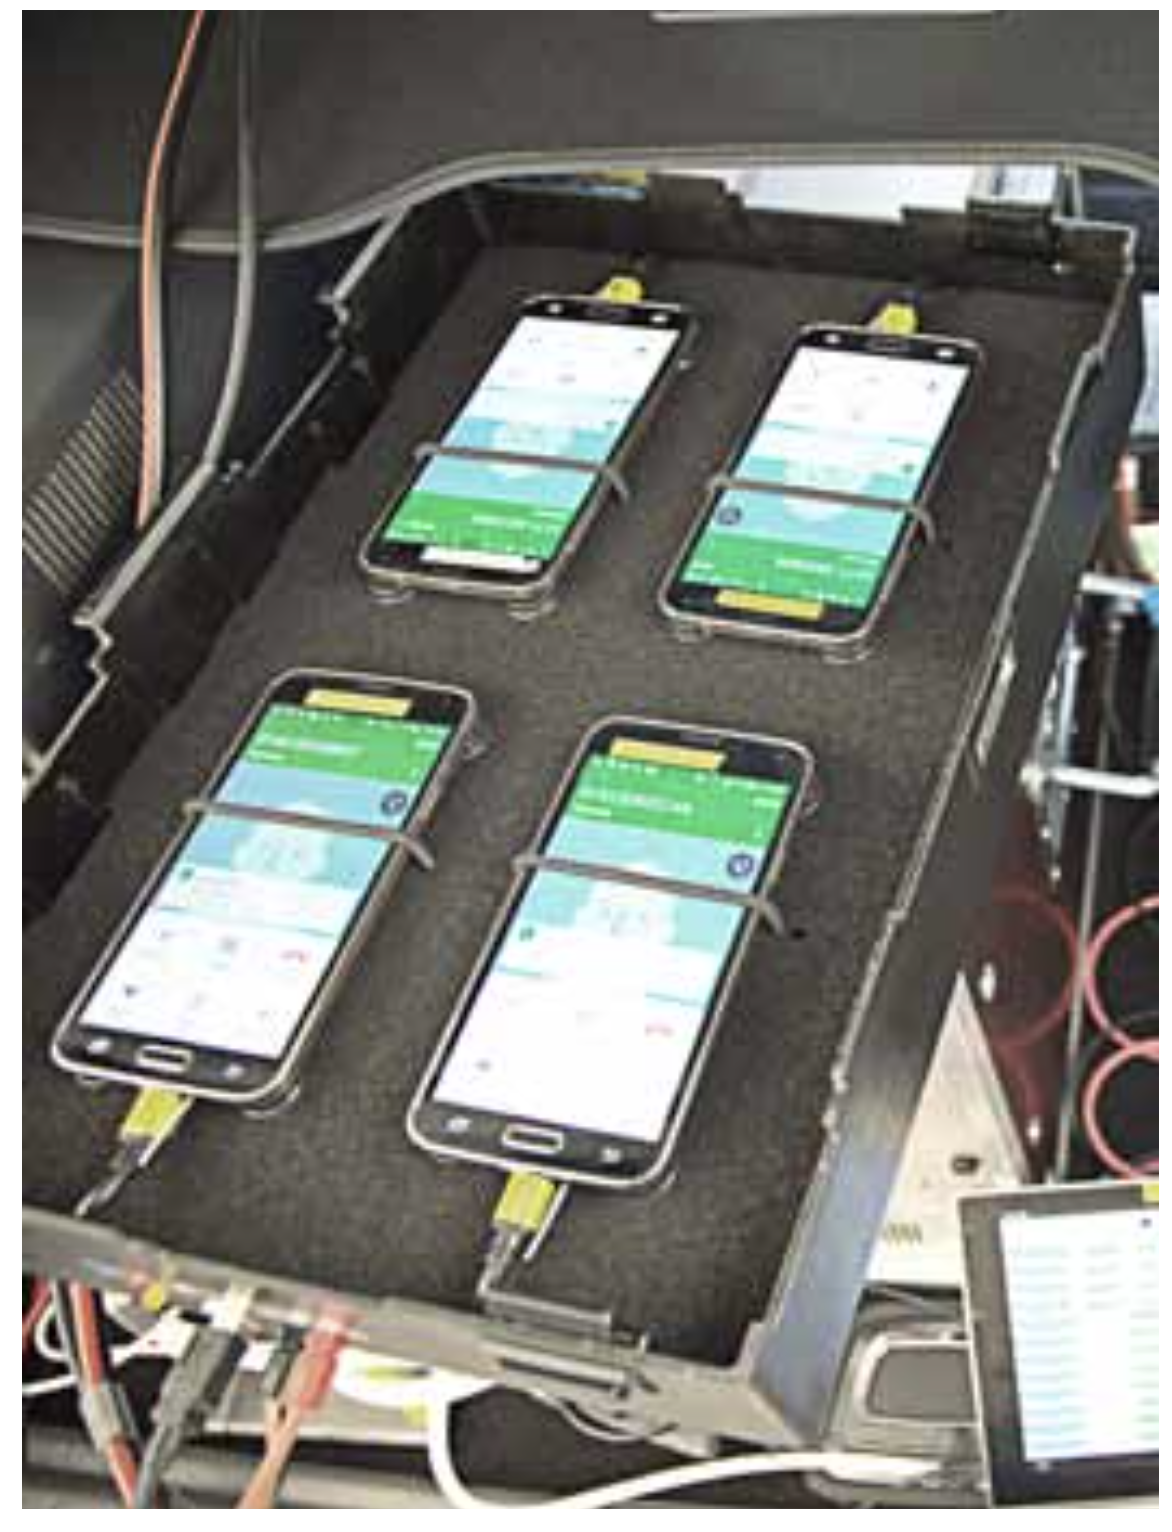 Each box housed four smartphones allowing the simultaneous testing of four mobile operators.